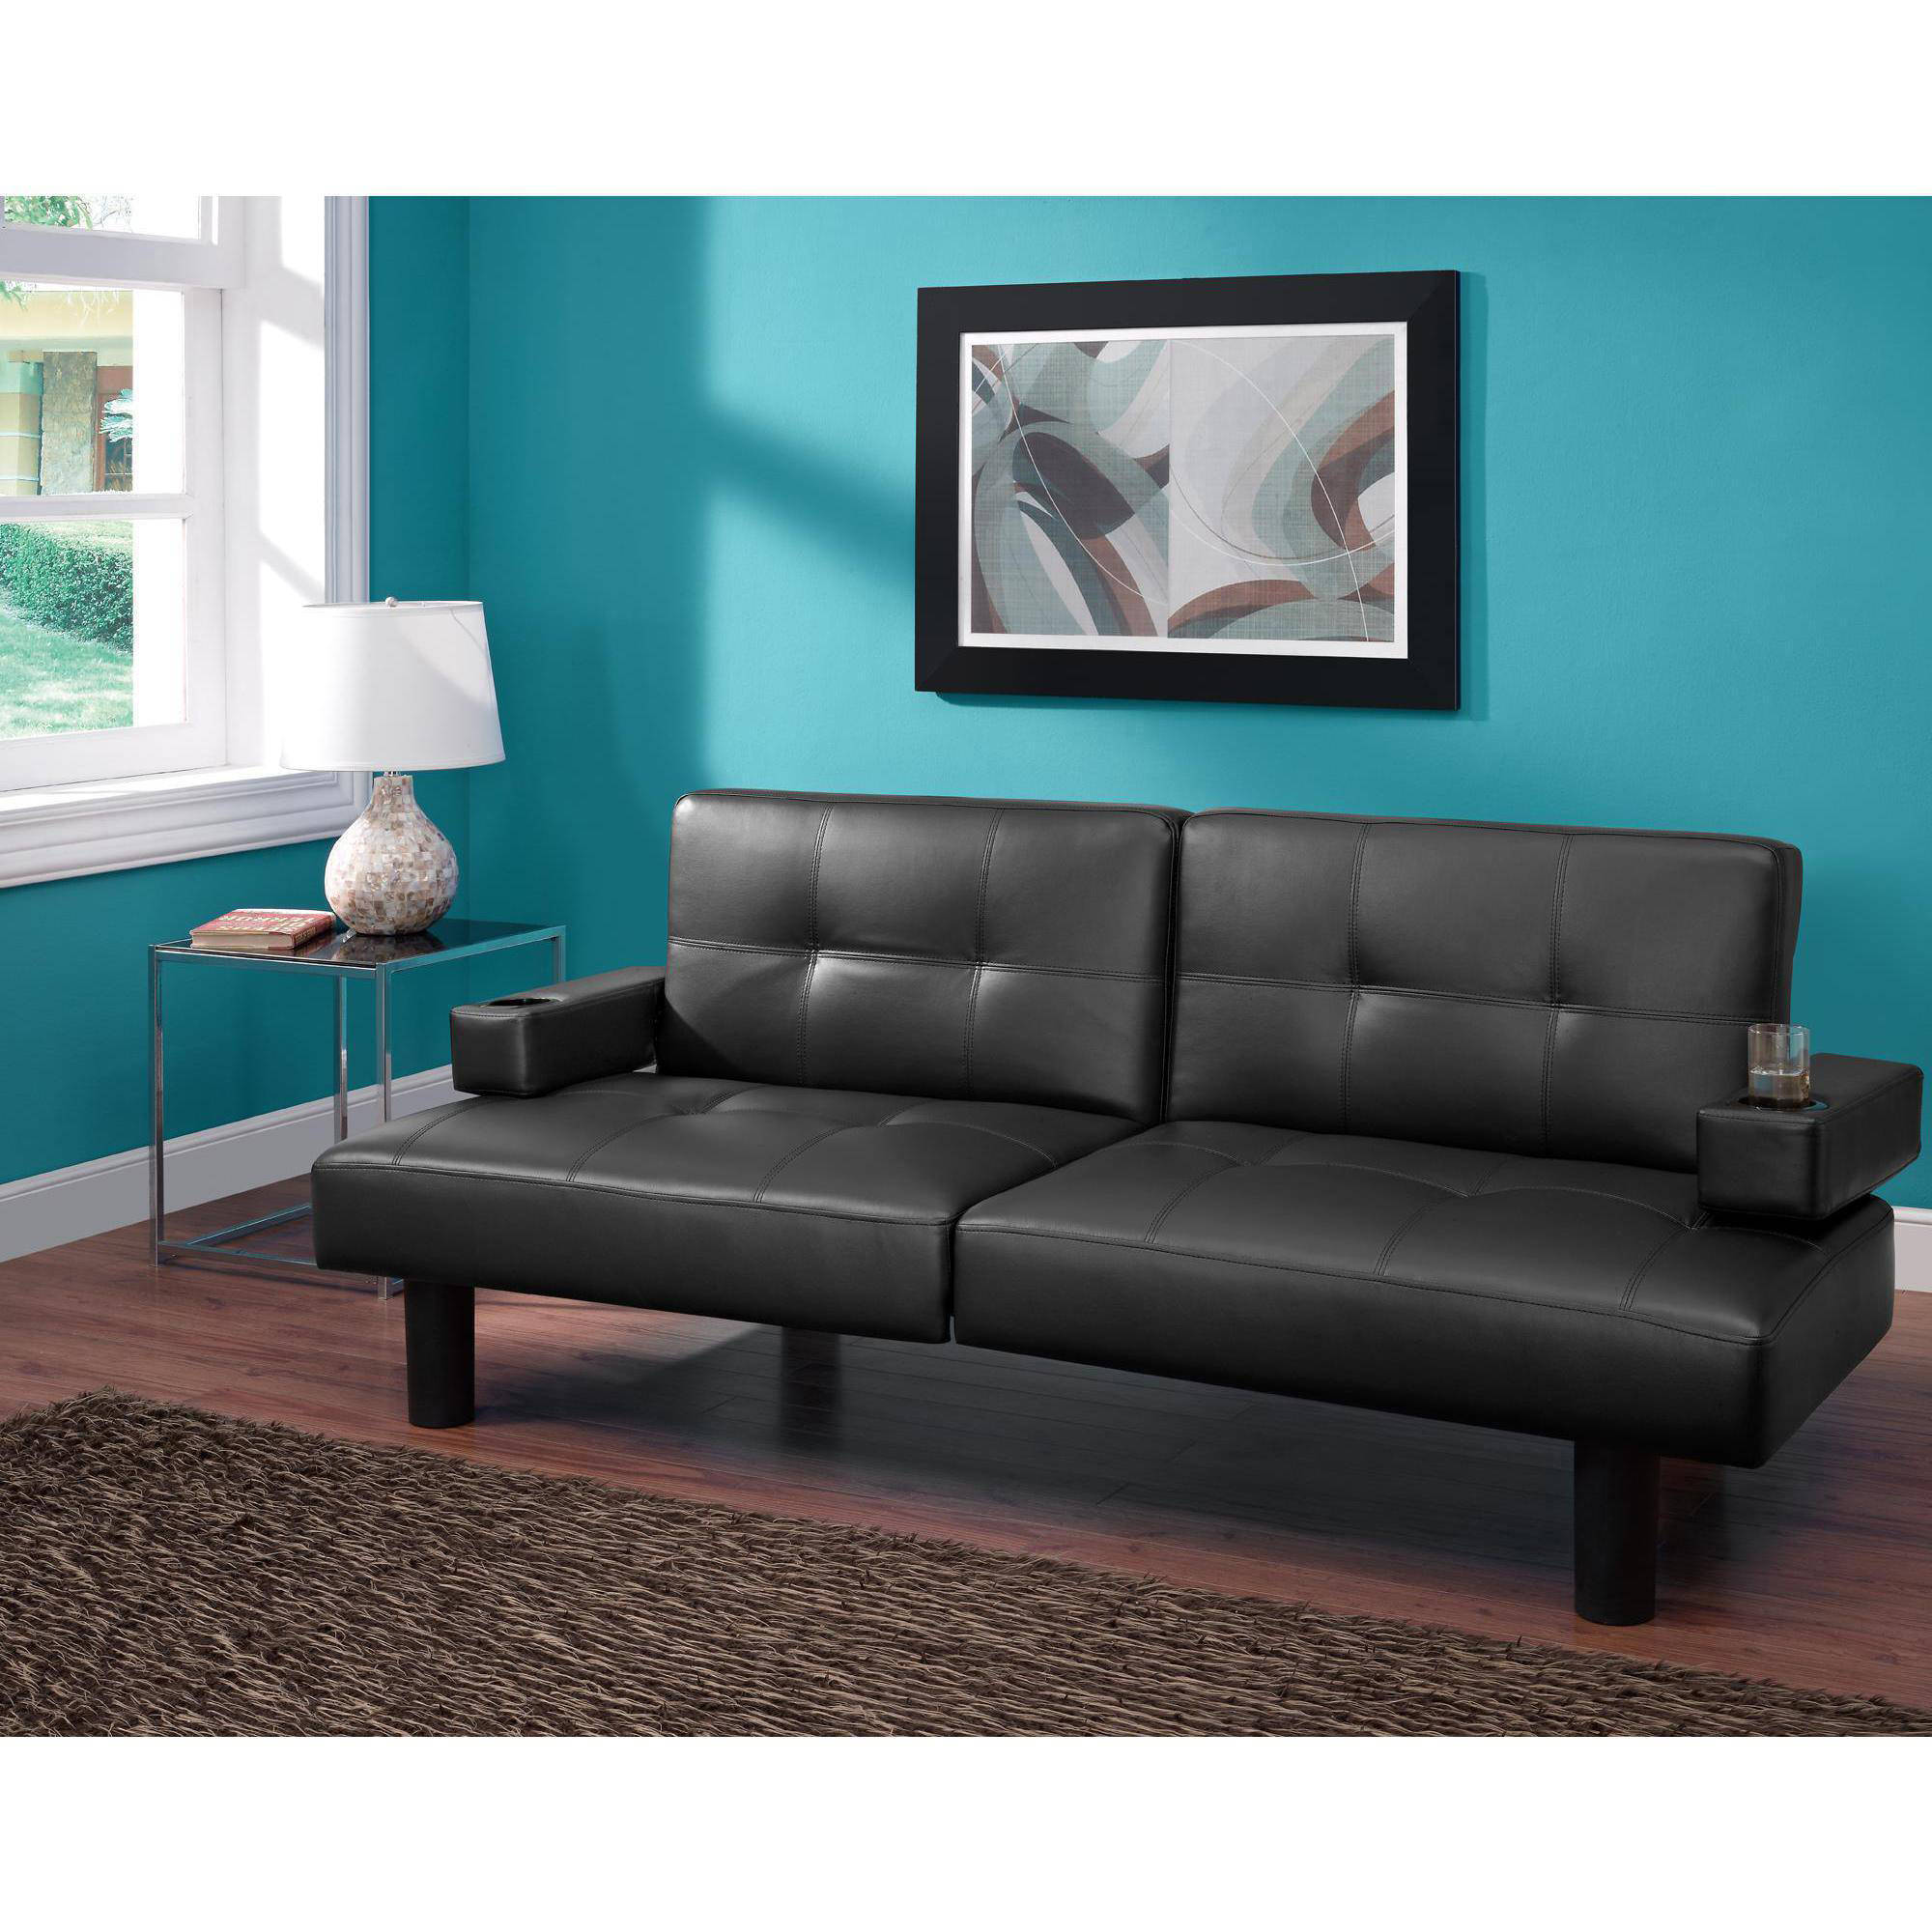 mainstays connectrix faux leather futon multiple colors   walmart    rh   walmart